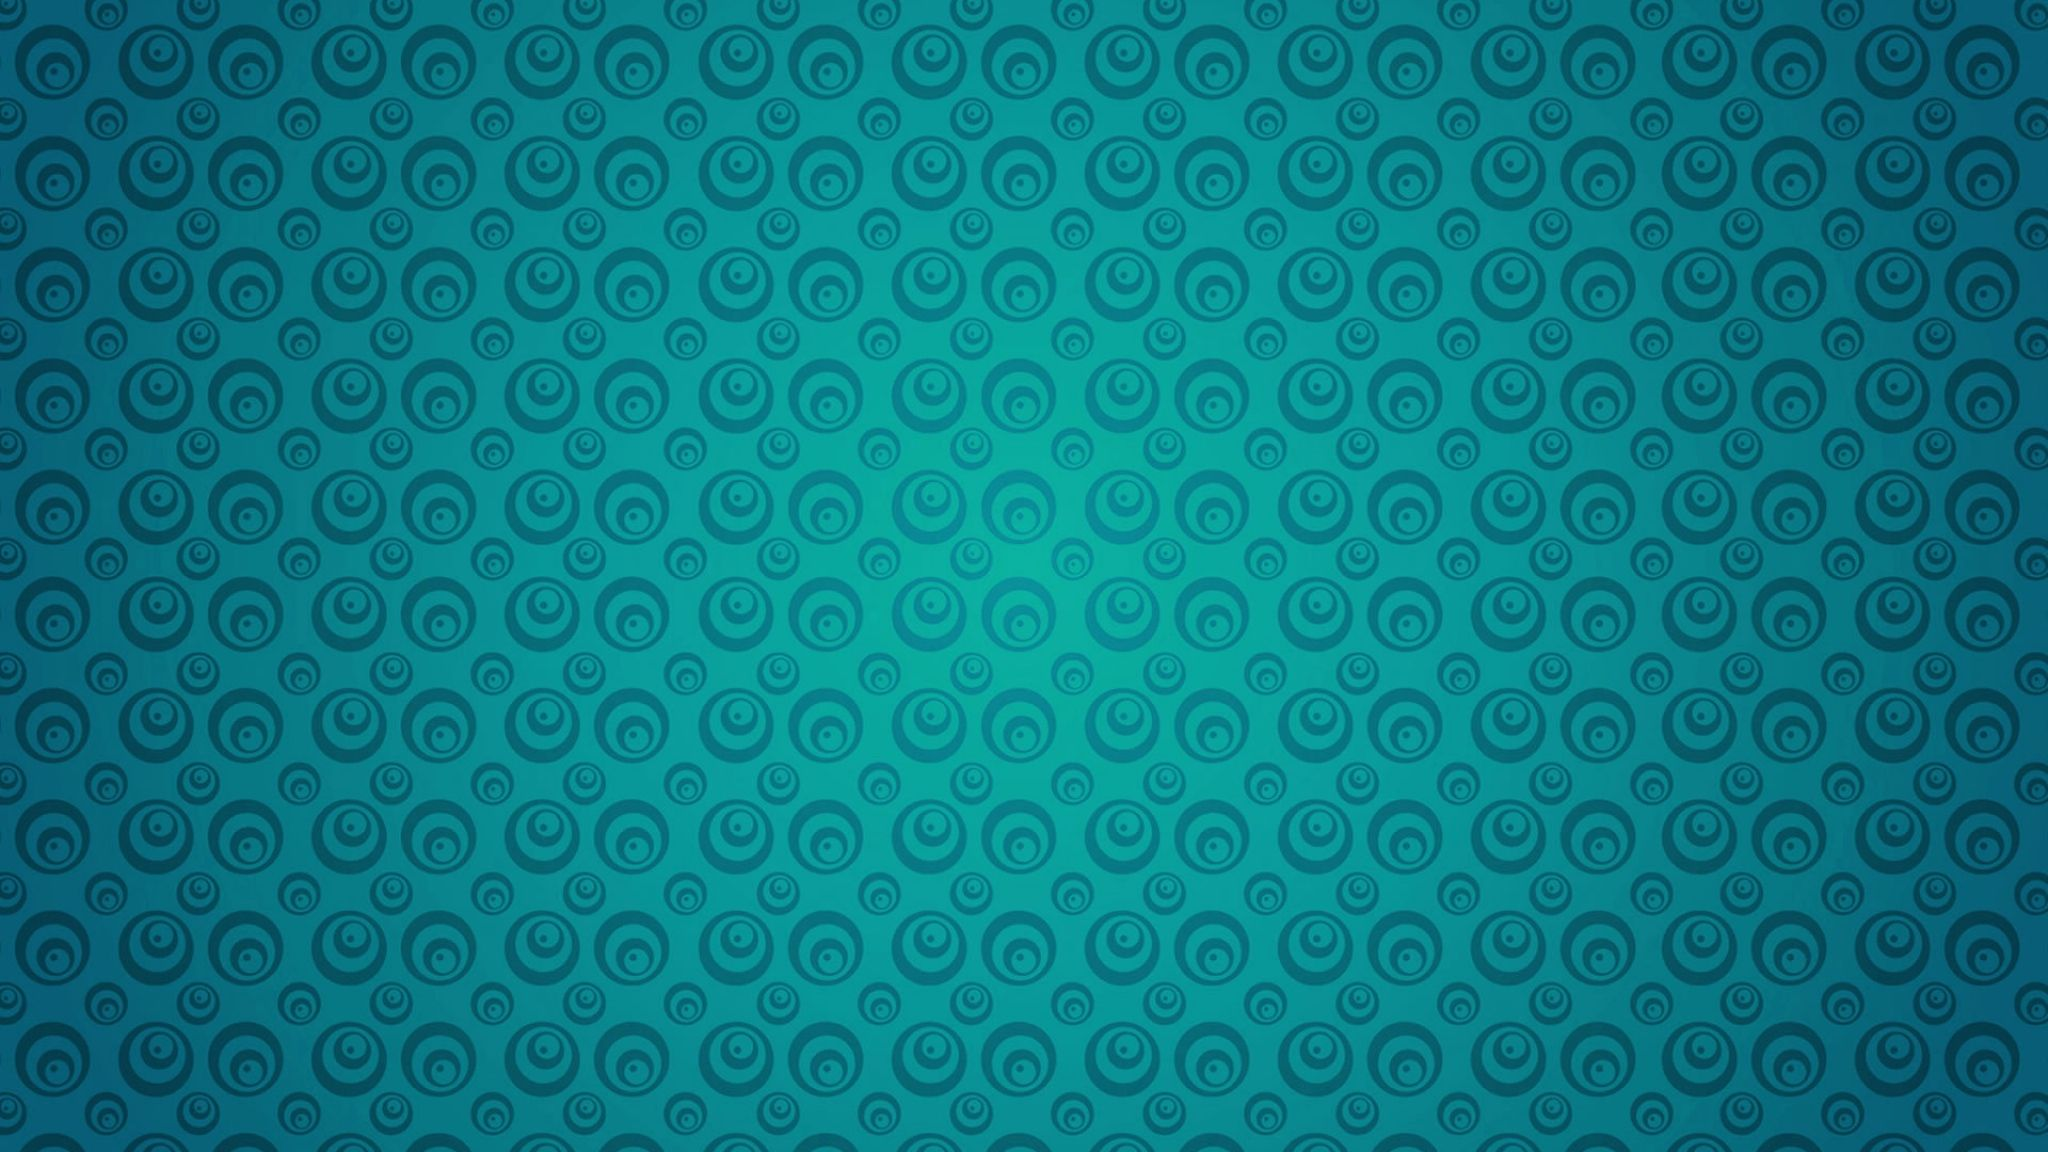 2048x1152 Wallpaper Circles Turquoise Texture Pattern Surface